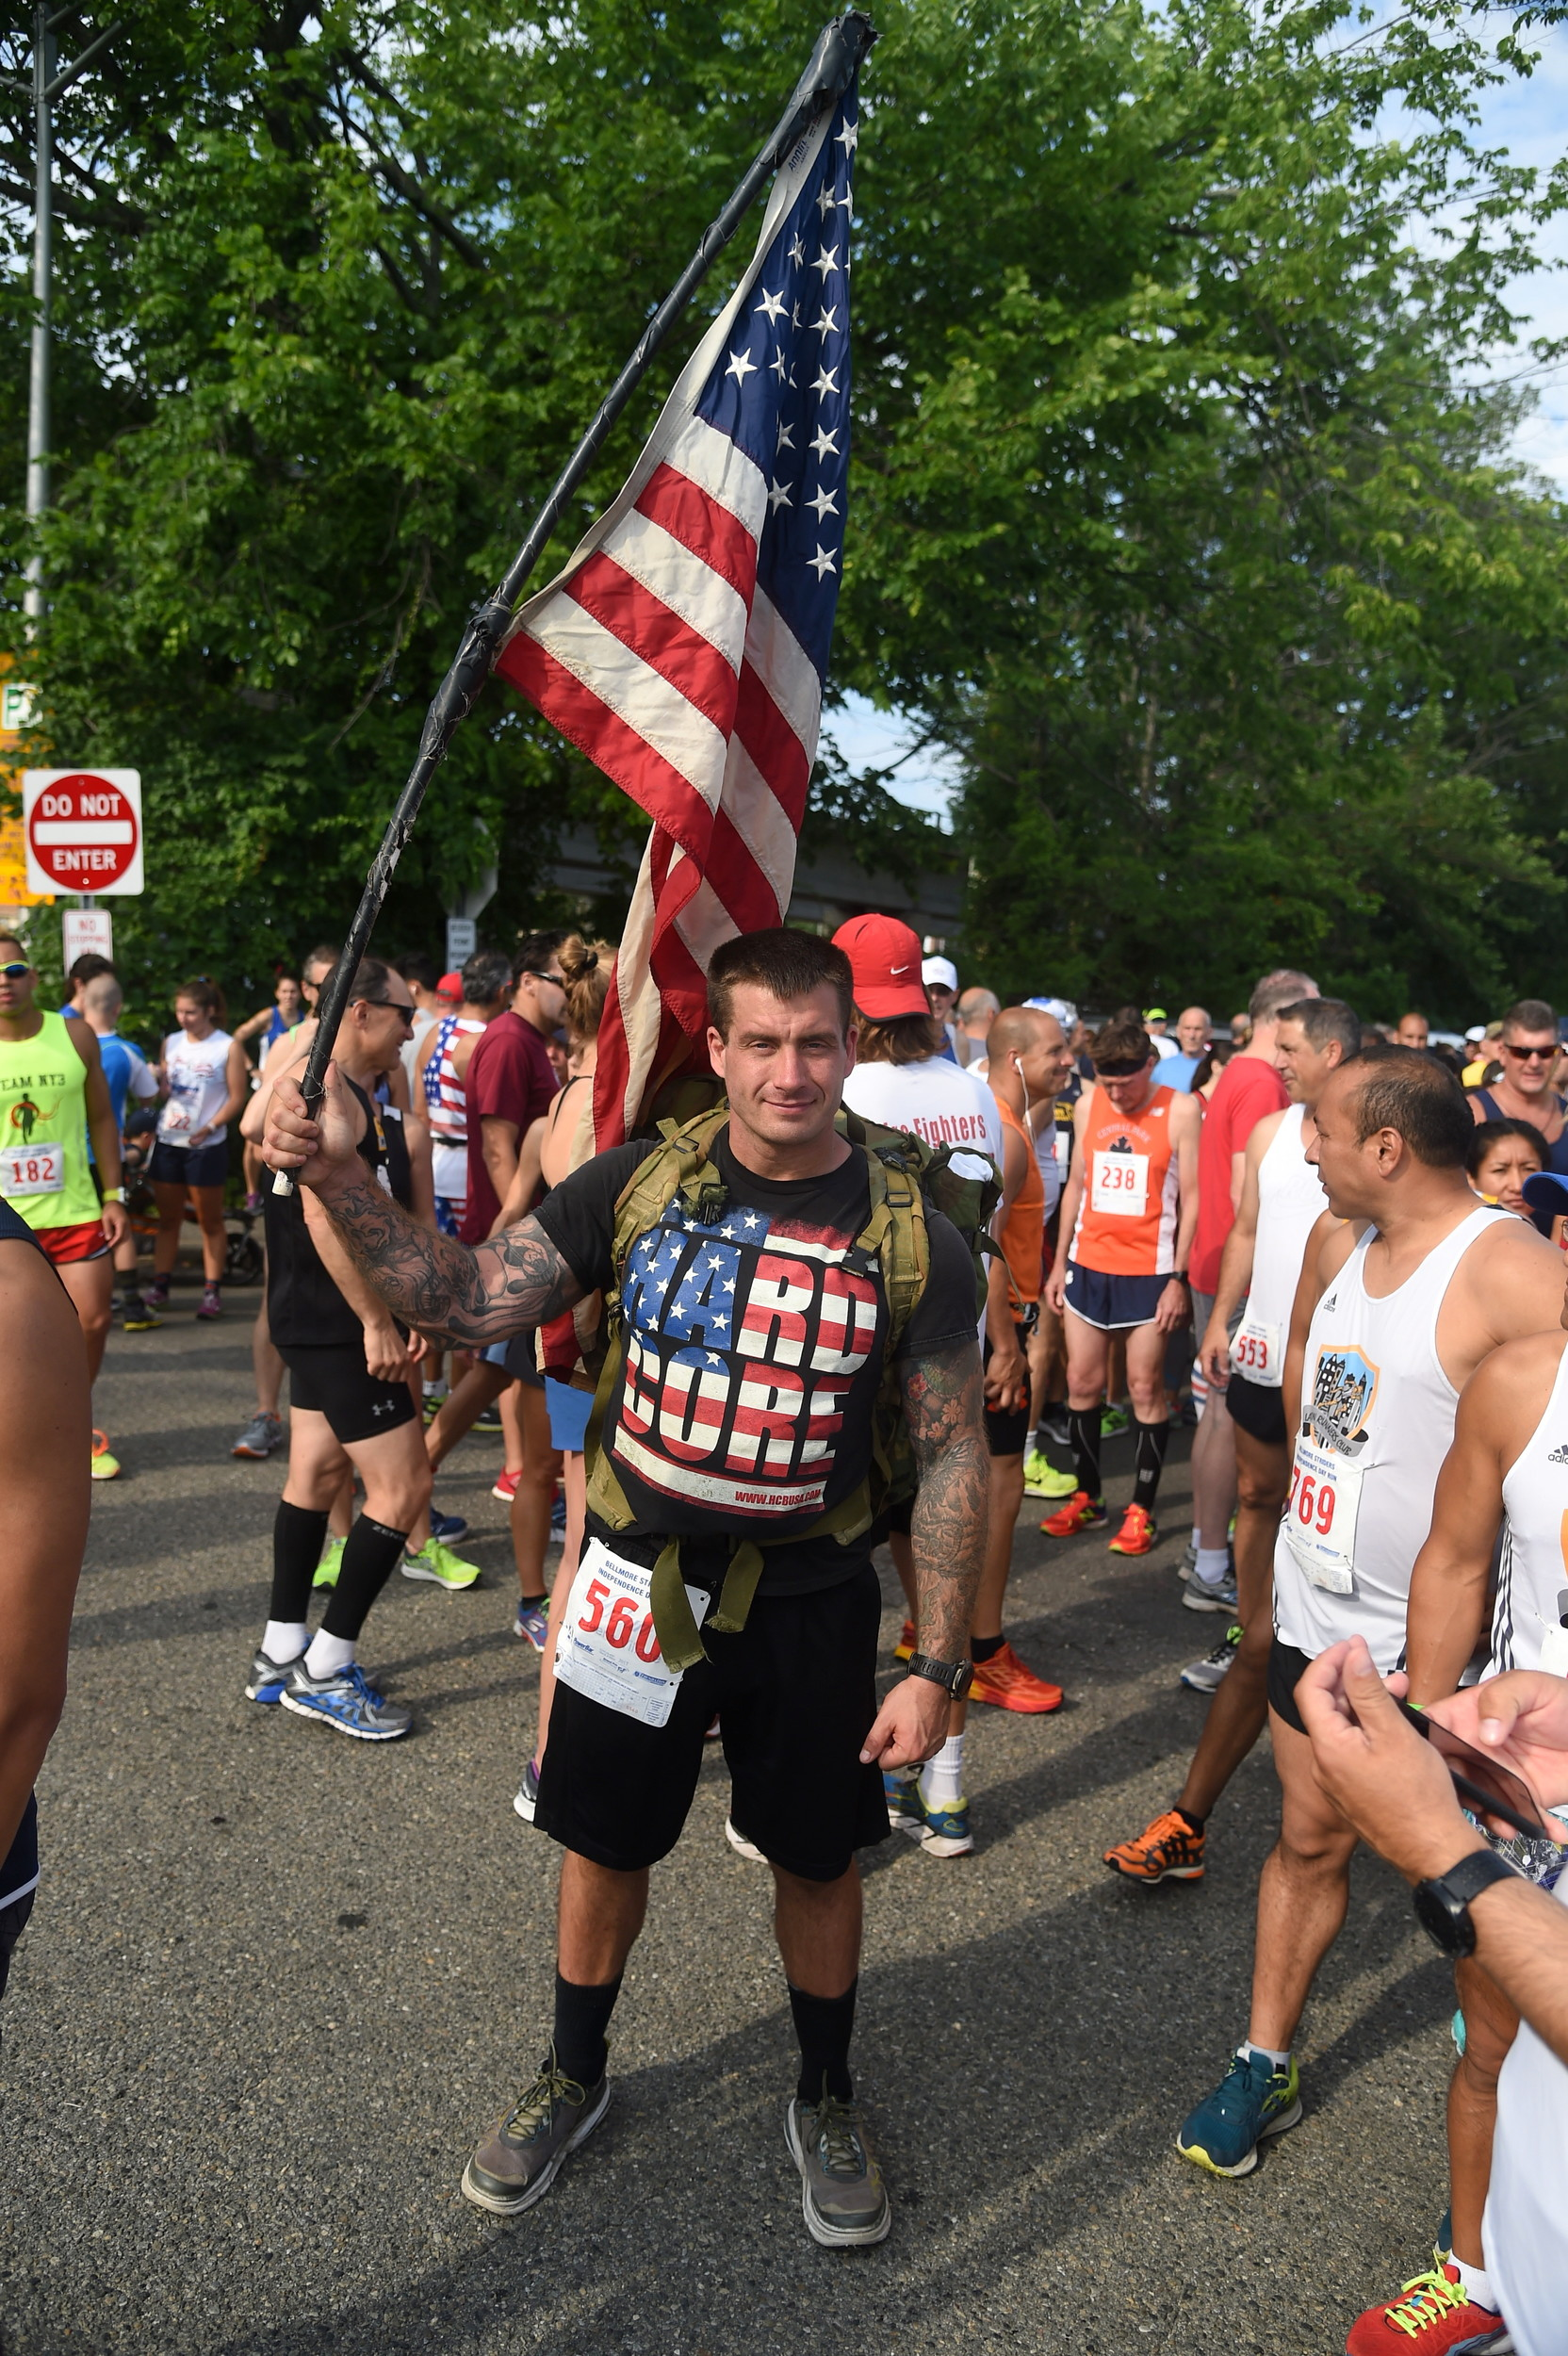 Billy Richards, a U.S. Marine from Islip, hoisted the flag before the kick-off of the Independence Day run.